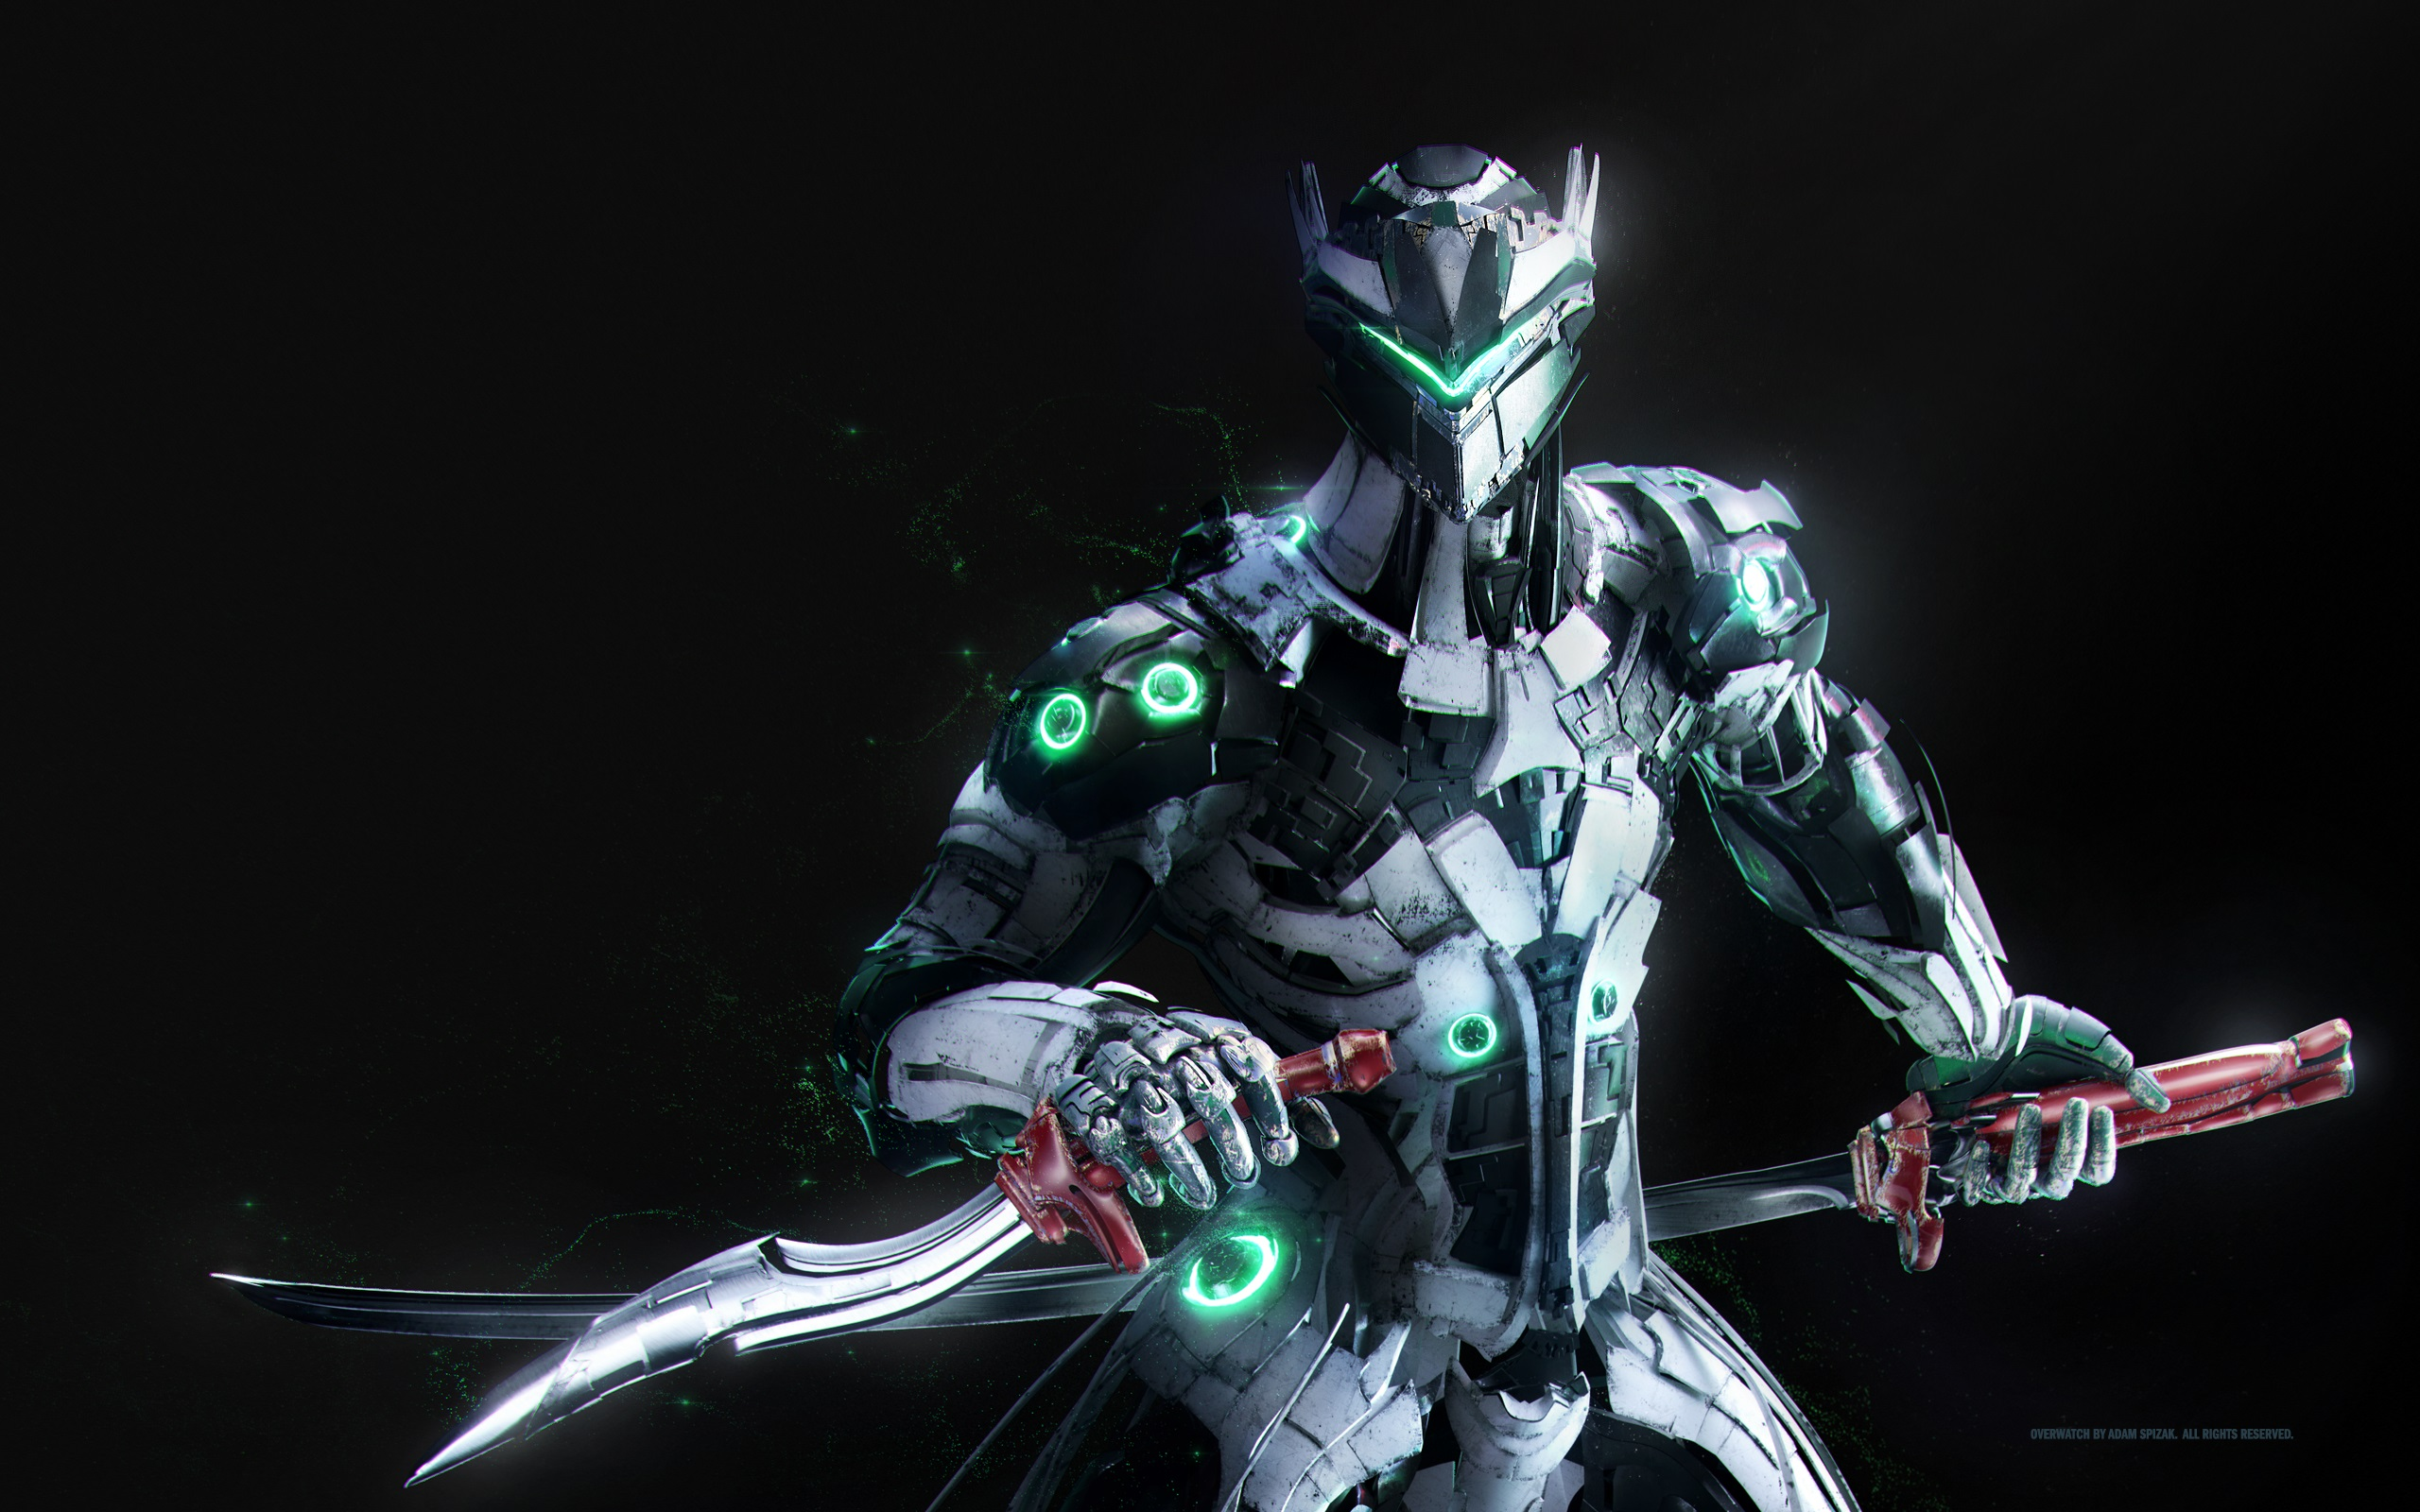 Overwatch Genji Wallpaper Hd Wallpaper Background